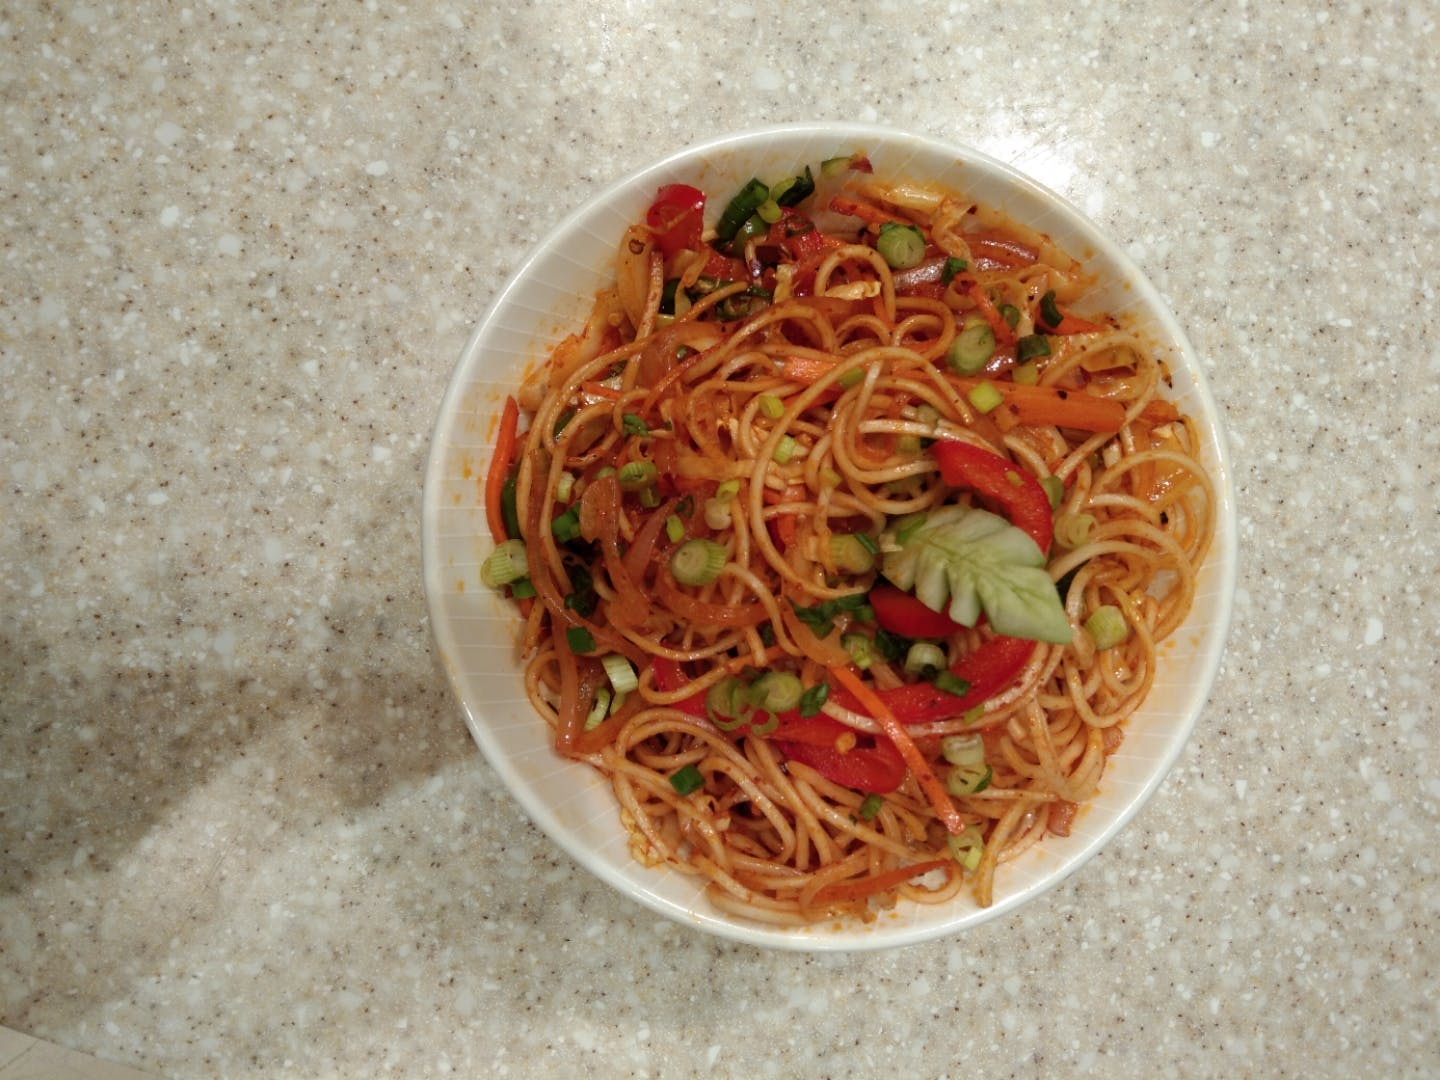 Dish,Cuisine,Food,Noodle,Ingredient,Chow mein,Spaghetti,Recipe,Chinese noodles,Capellini